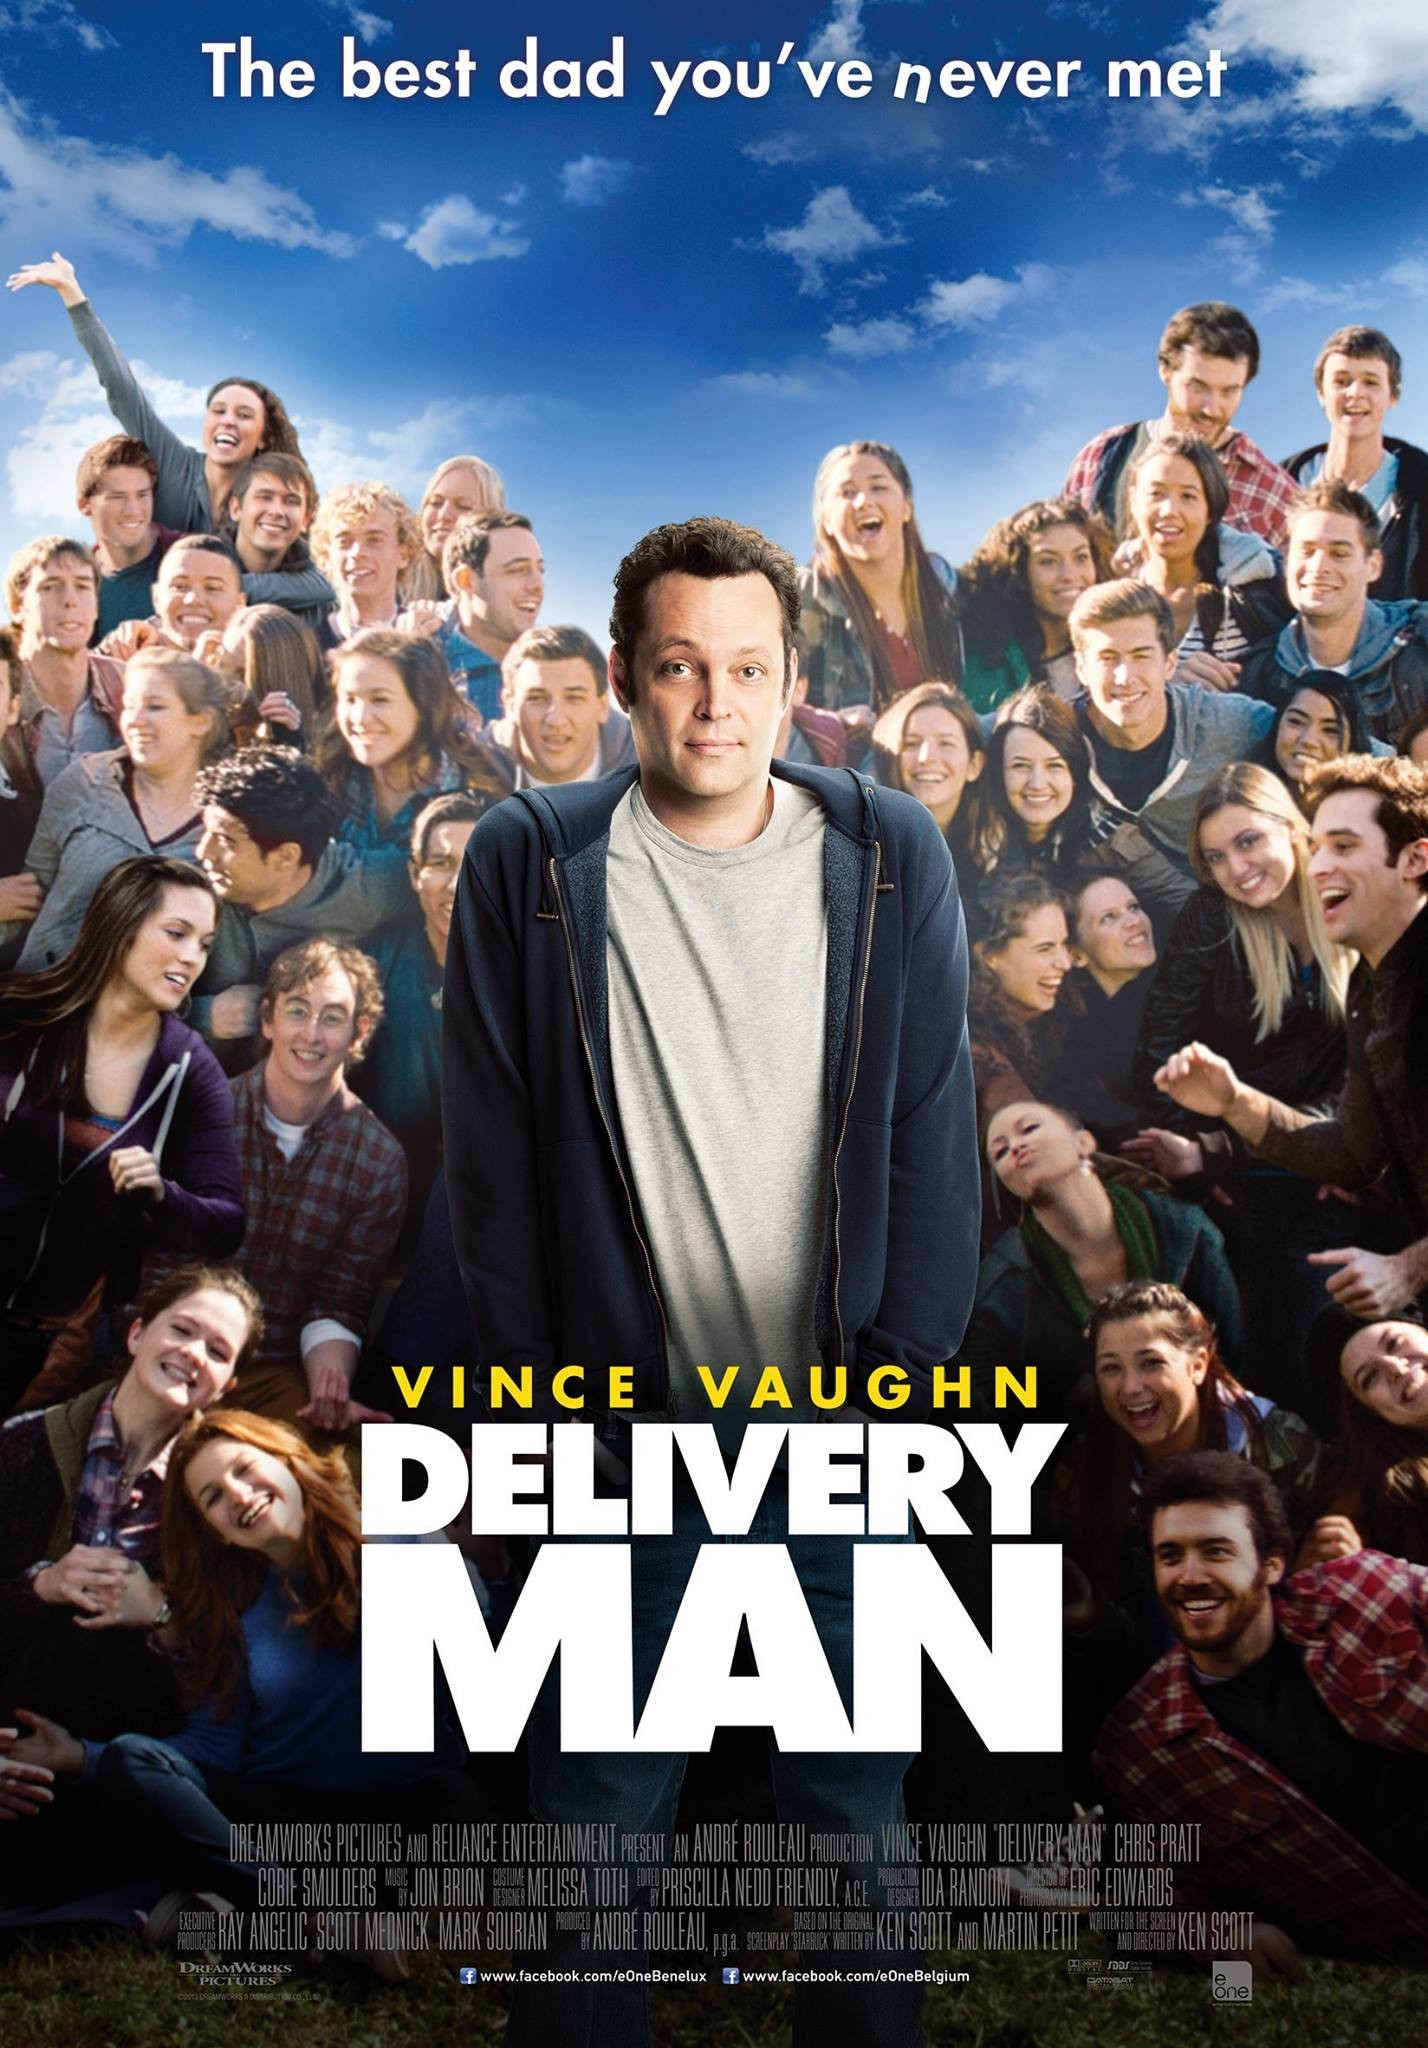 Delivery Man-Official Poster Banner PROMO POSTER XXLG-07NOVEMBRO2013-01